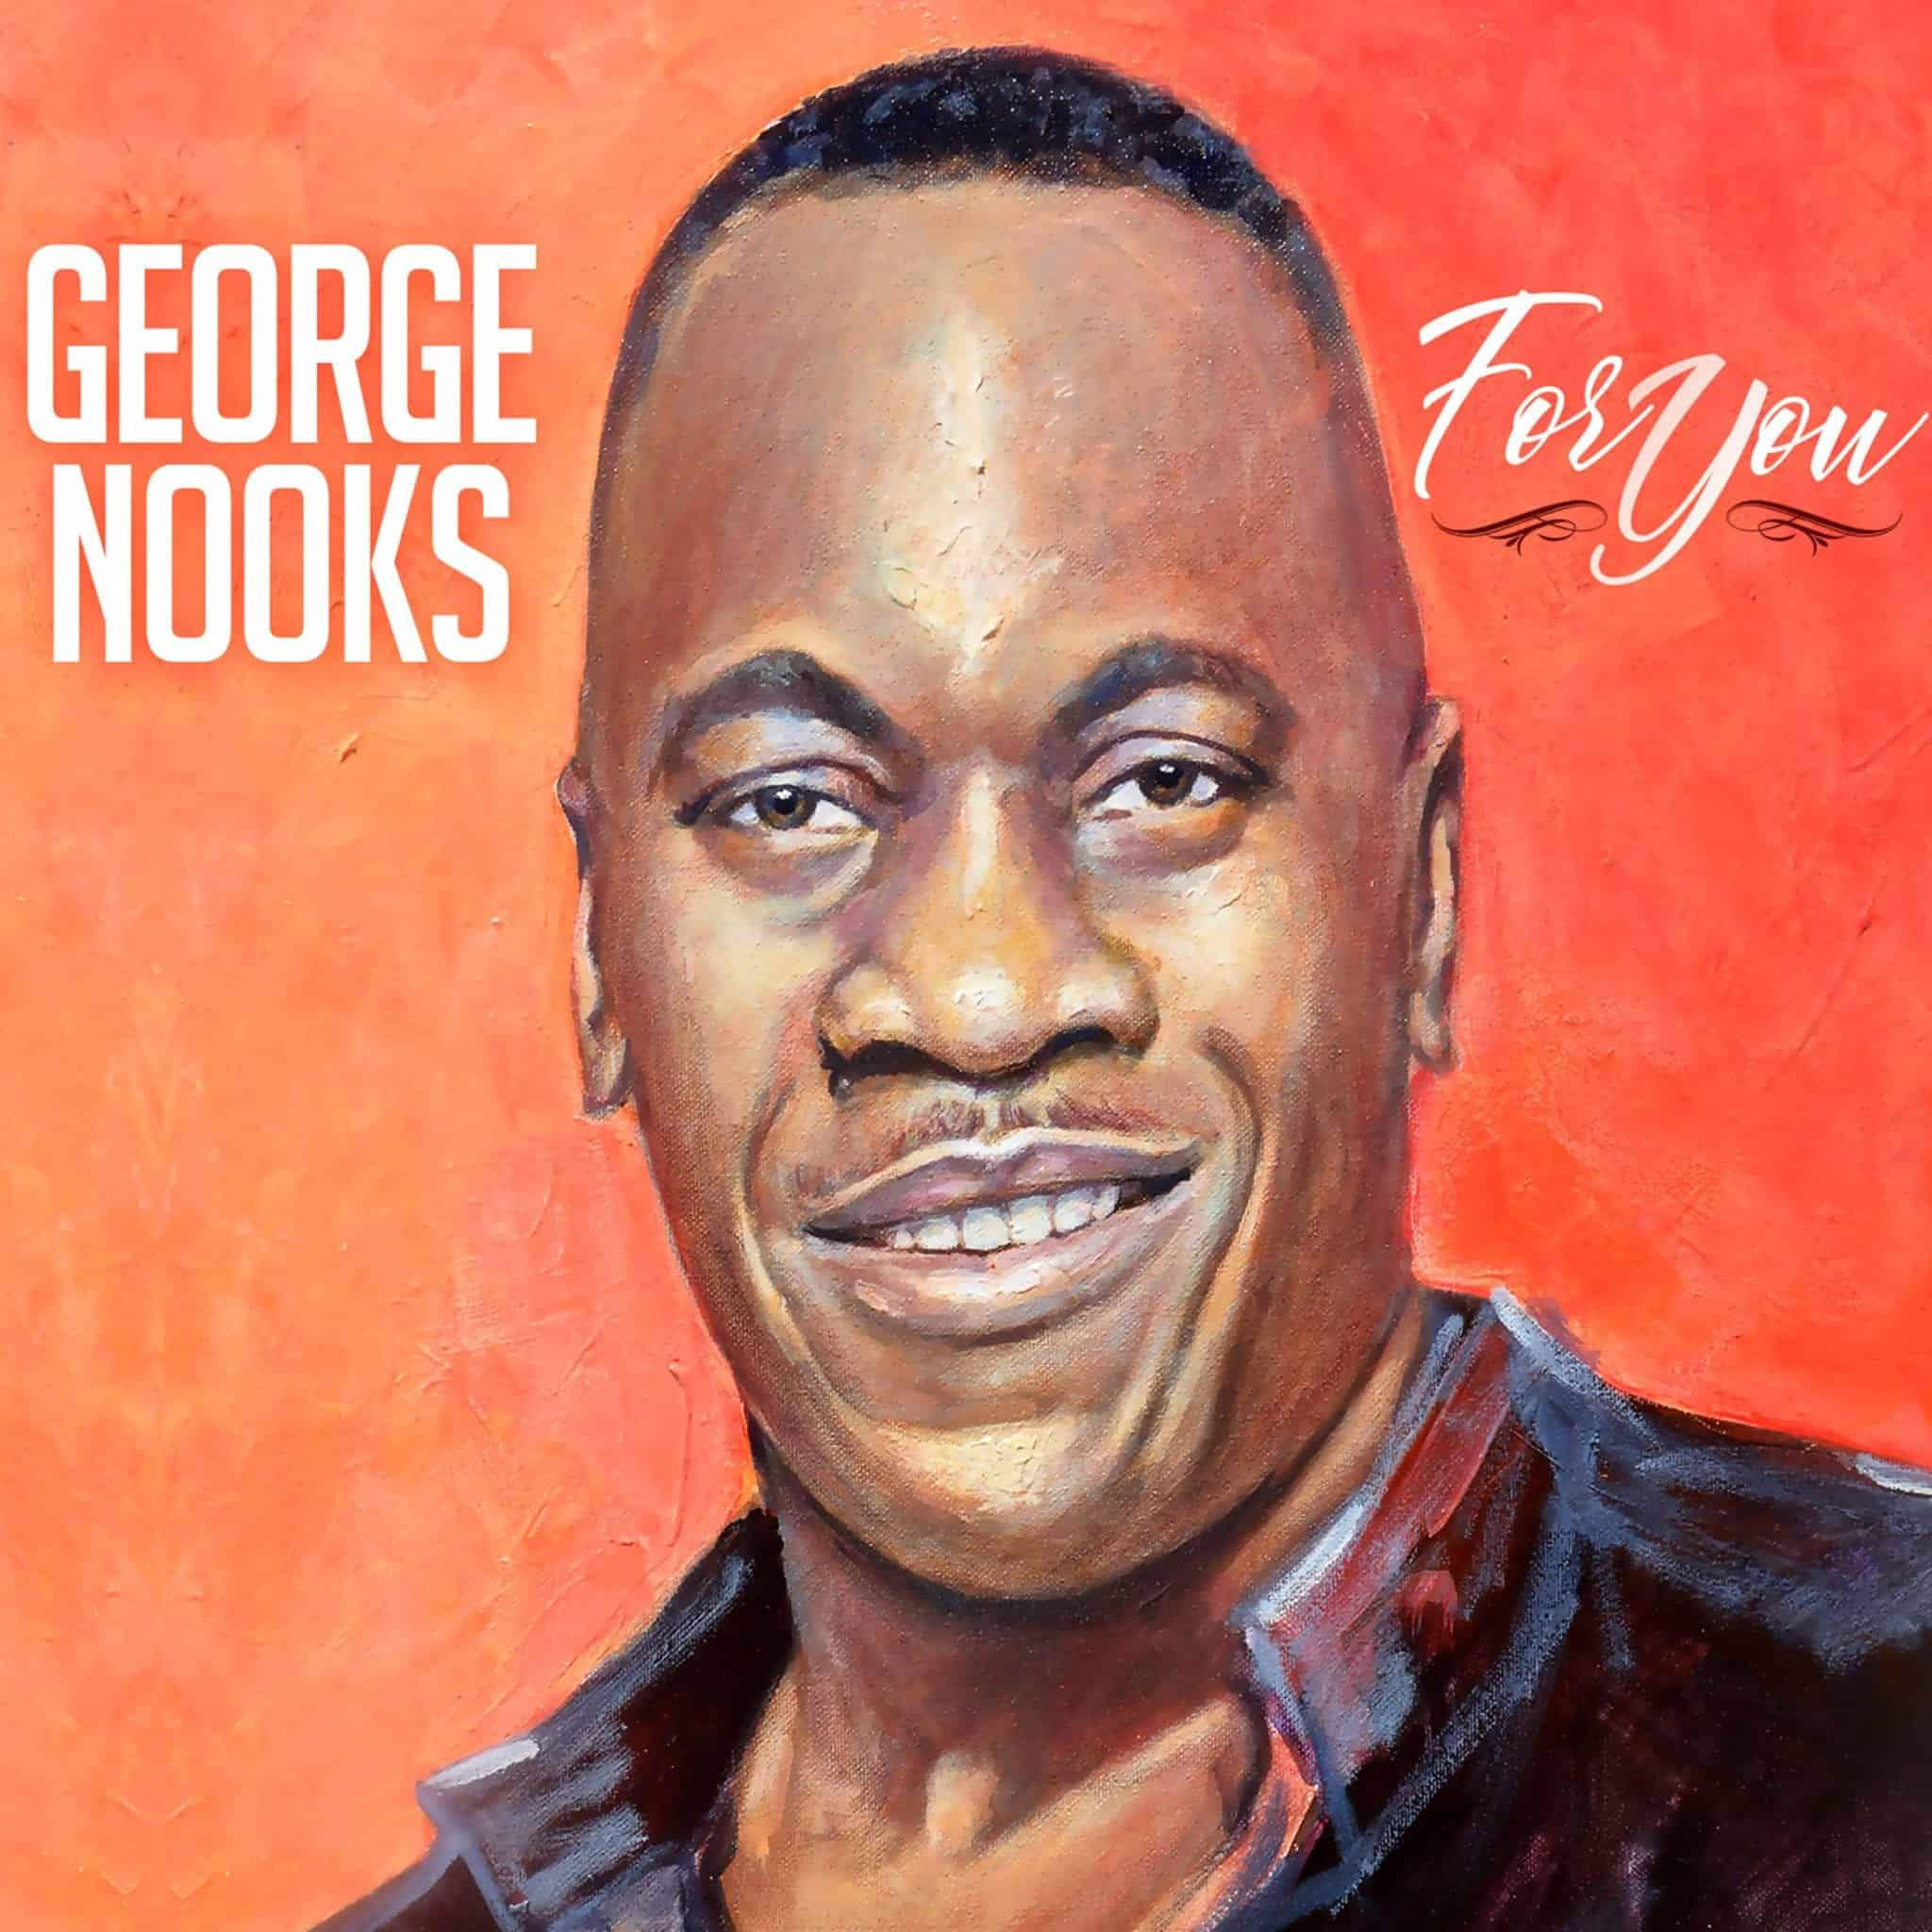 George Nooks - For You - Tad